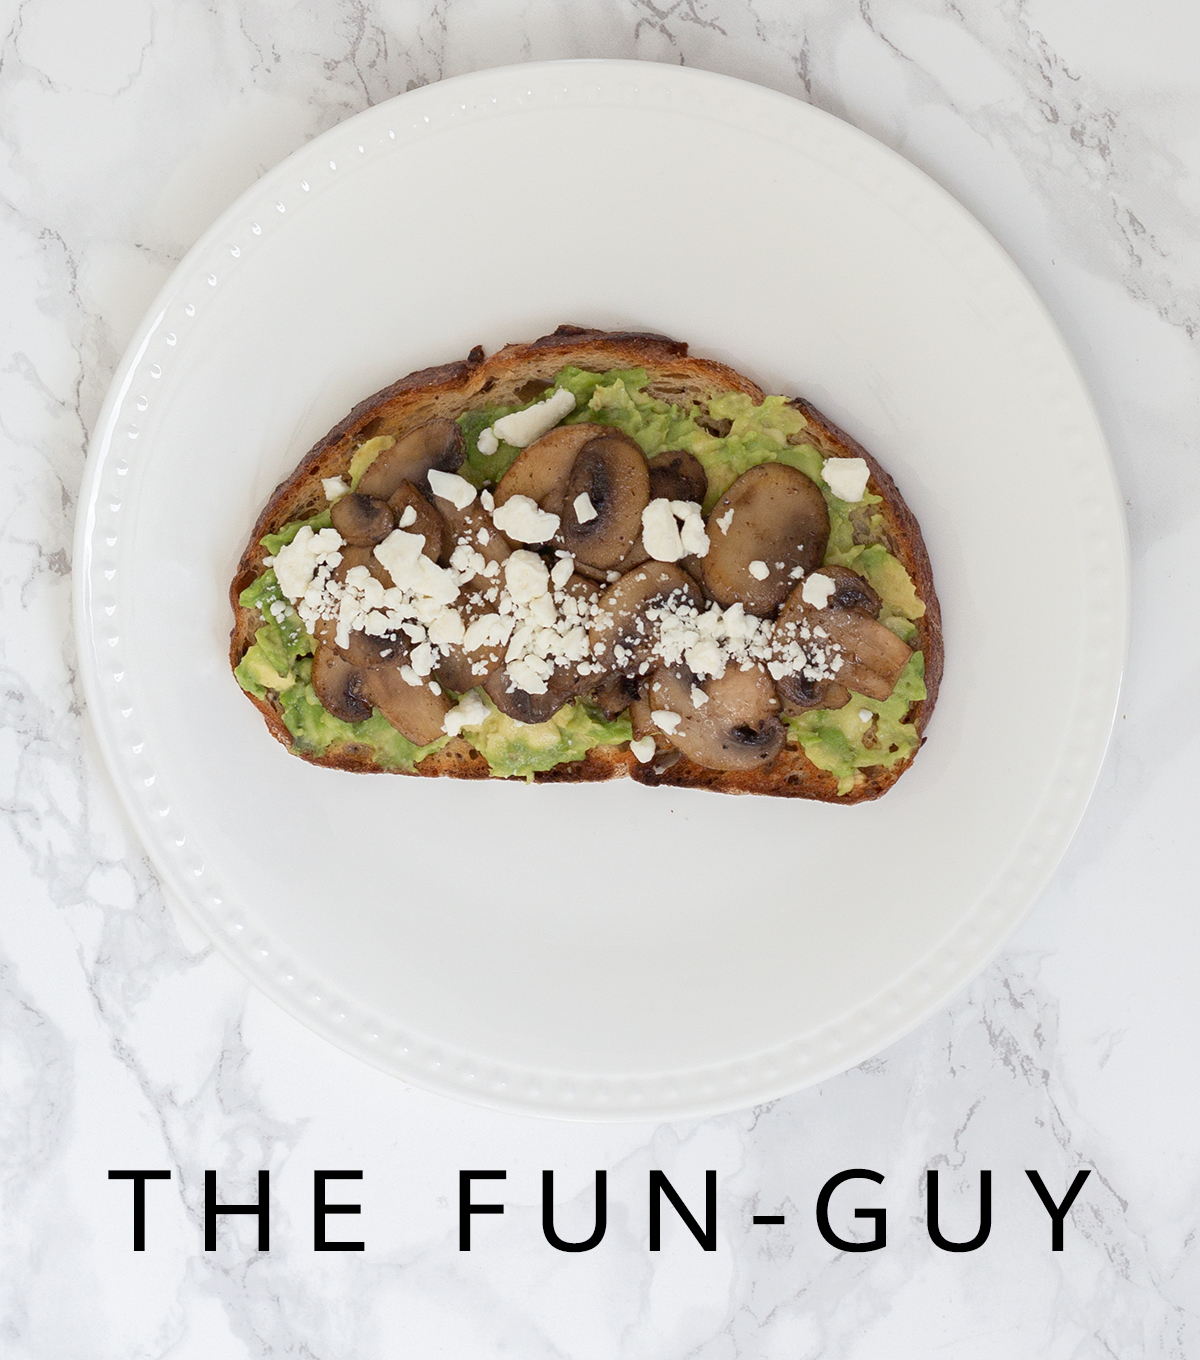 avocado toast with sautéed mushrooms and feta cheese